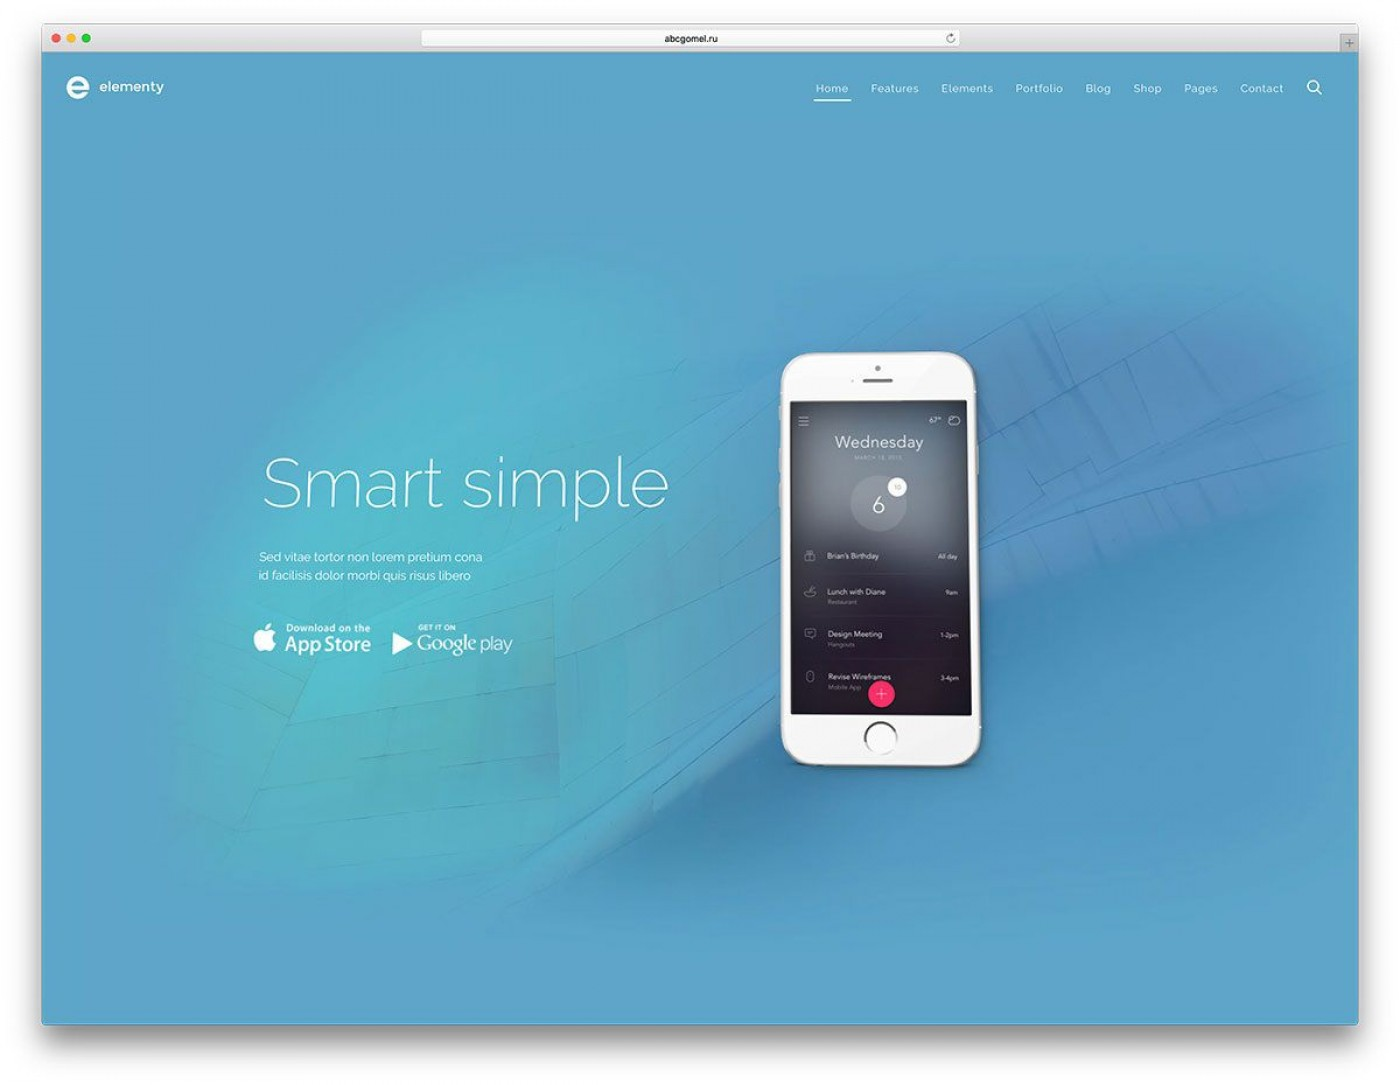 002 Incredible One Page Website Template Html5 Free Download Image  Parallax1400